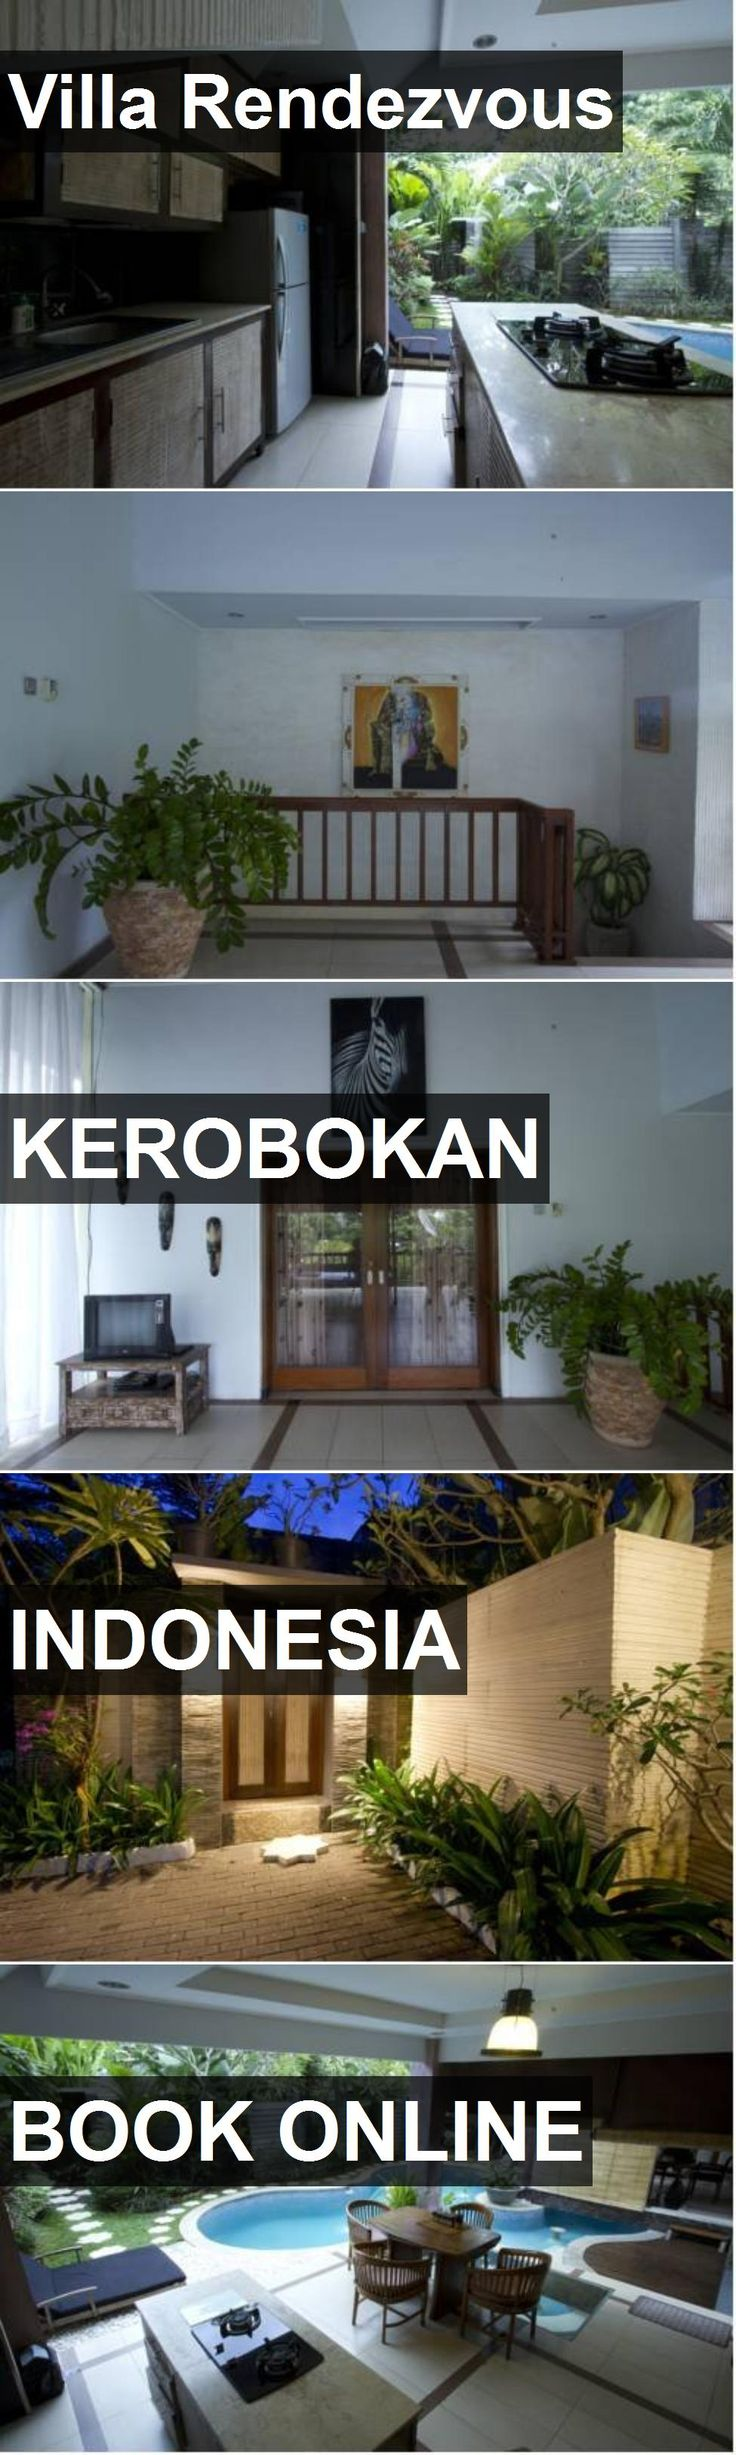 Hotel Villa Rendezvous in Kerobokan, Indonesia. For more information, photos, reviews and best prices please follow the link. #Indonesia #Kerobokan #travel #vacation #hotel